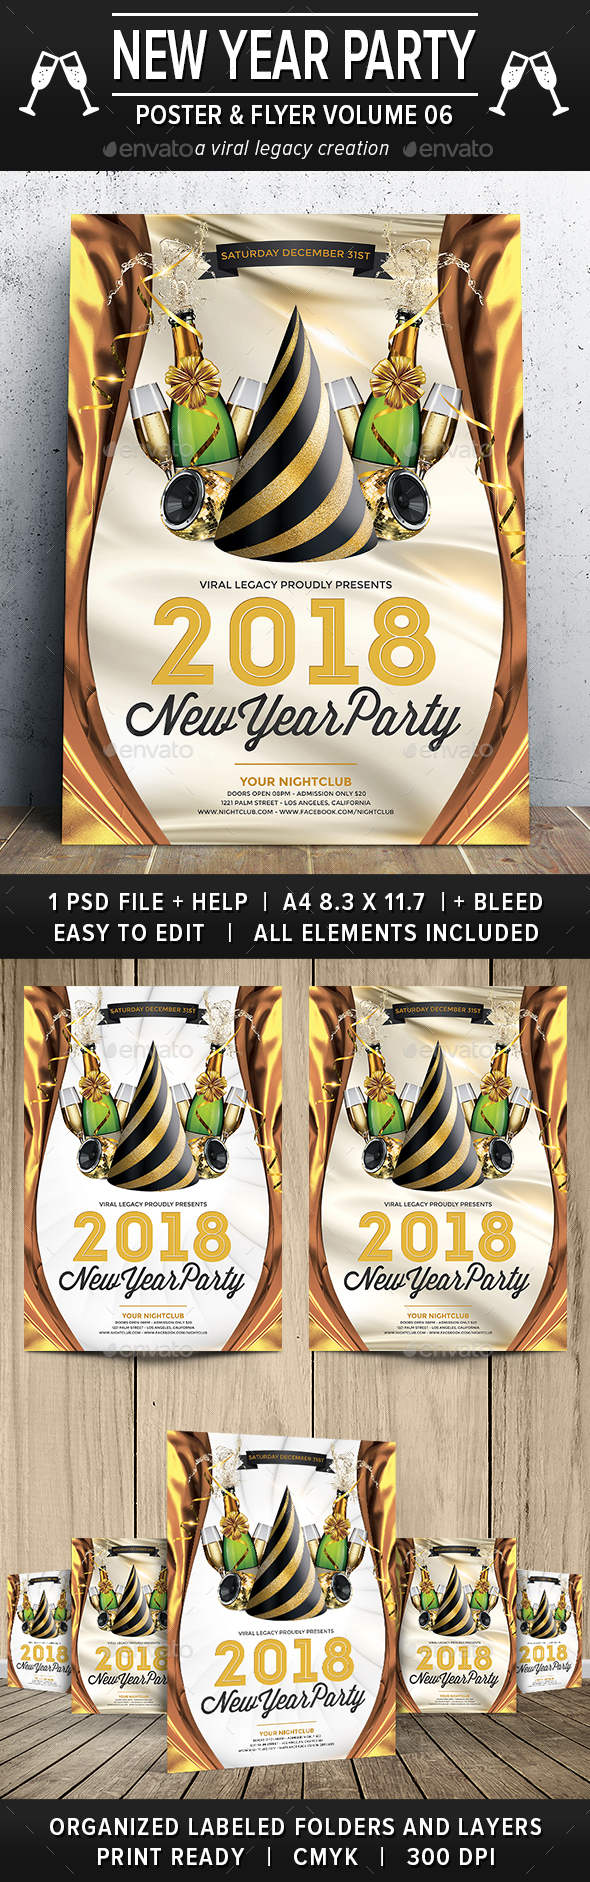 New Year Party Poster / Flyer V06 - Flyers Print Templates